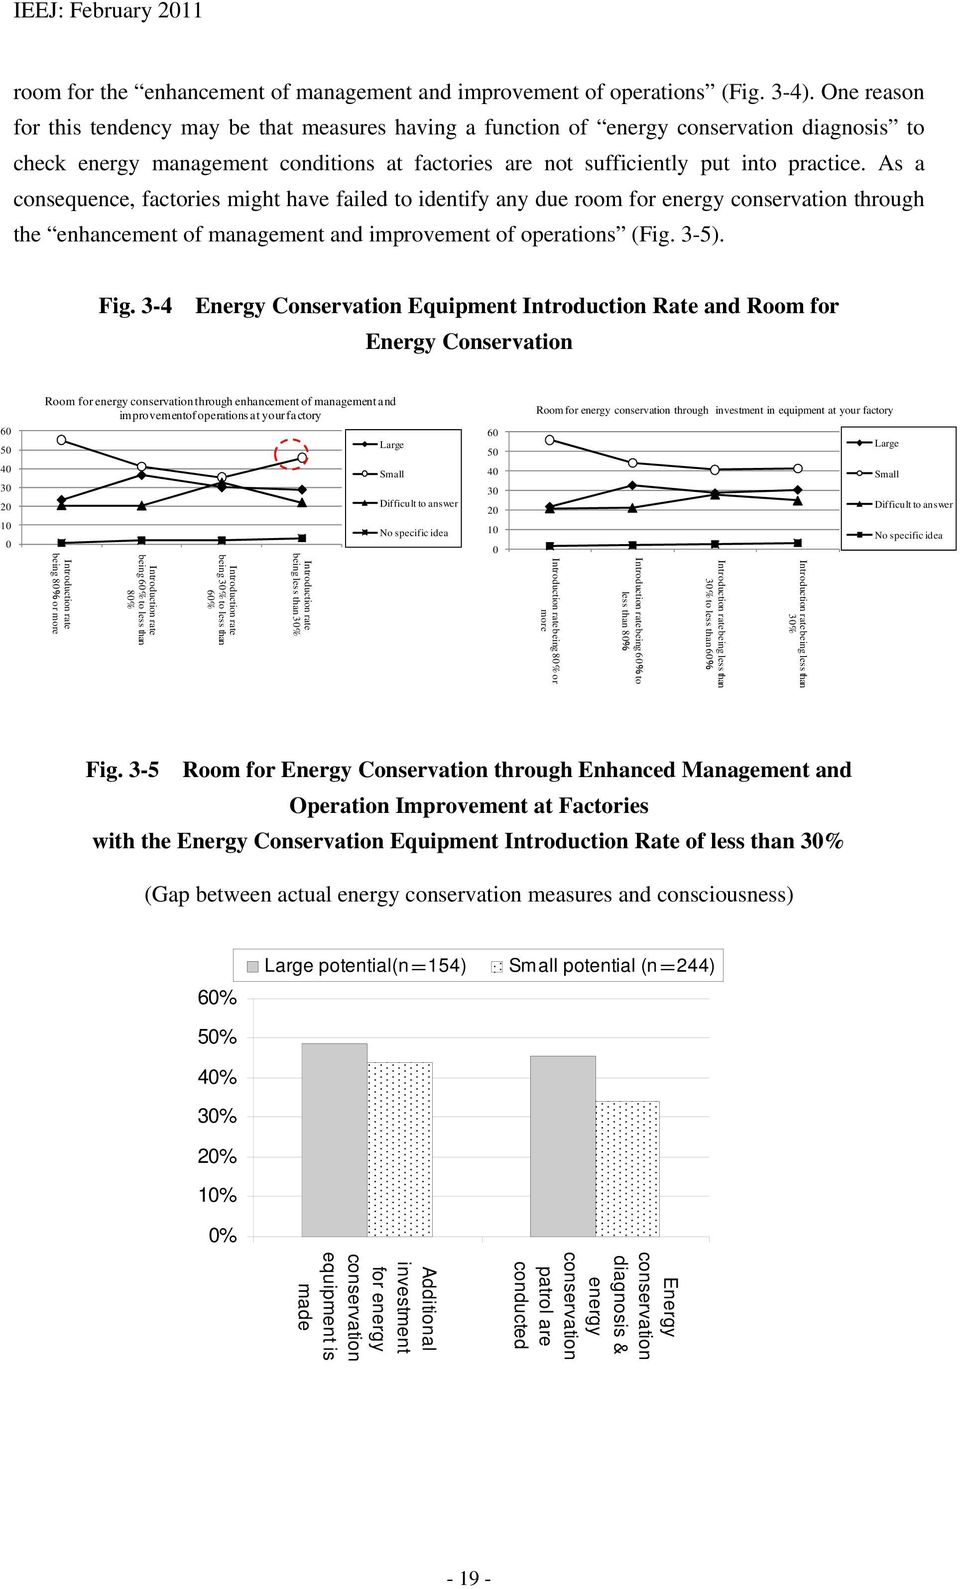 As a consequence, factories might have failed to identify any due room for energy conservation through the enhancement of management and improvement of operations (Fig. 3-5). Fig.